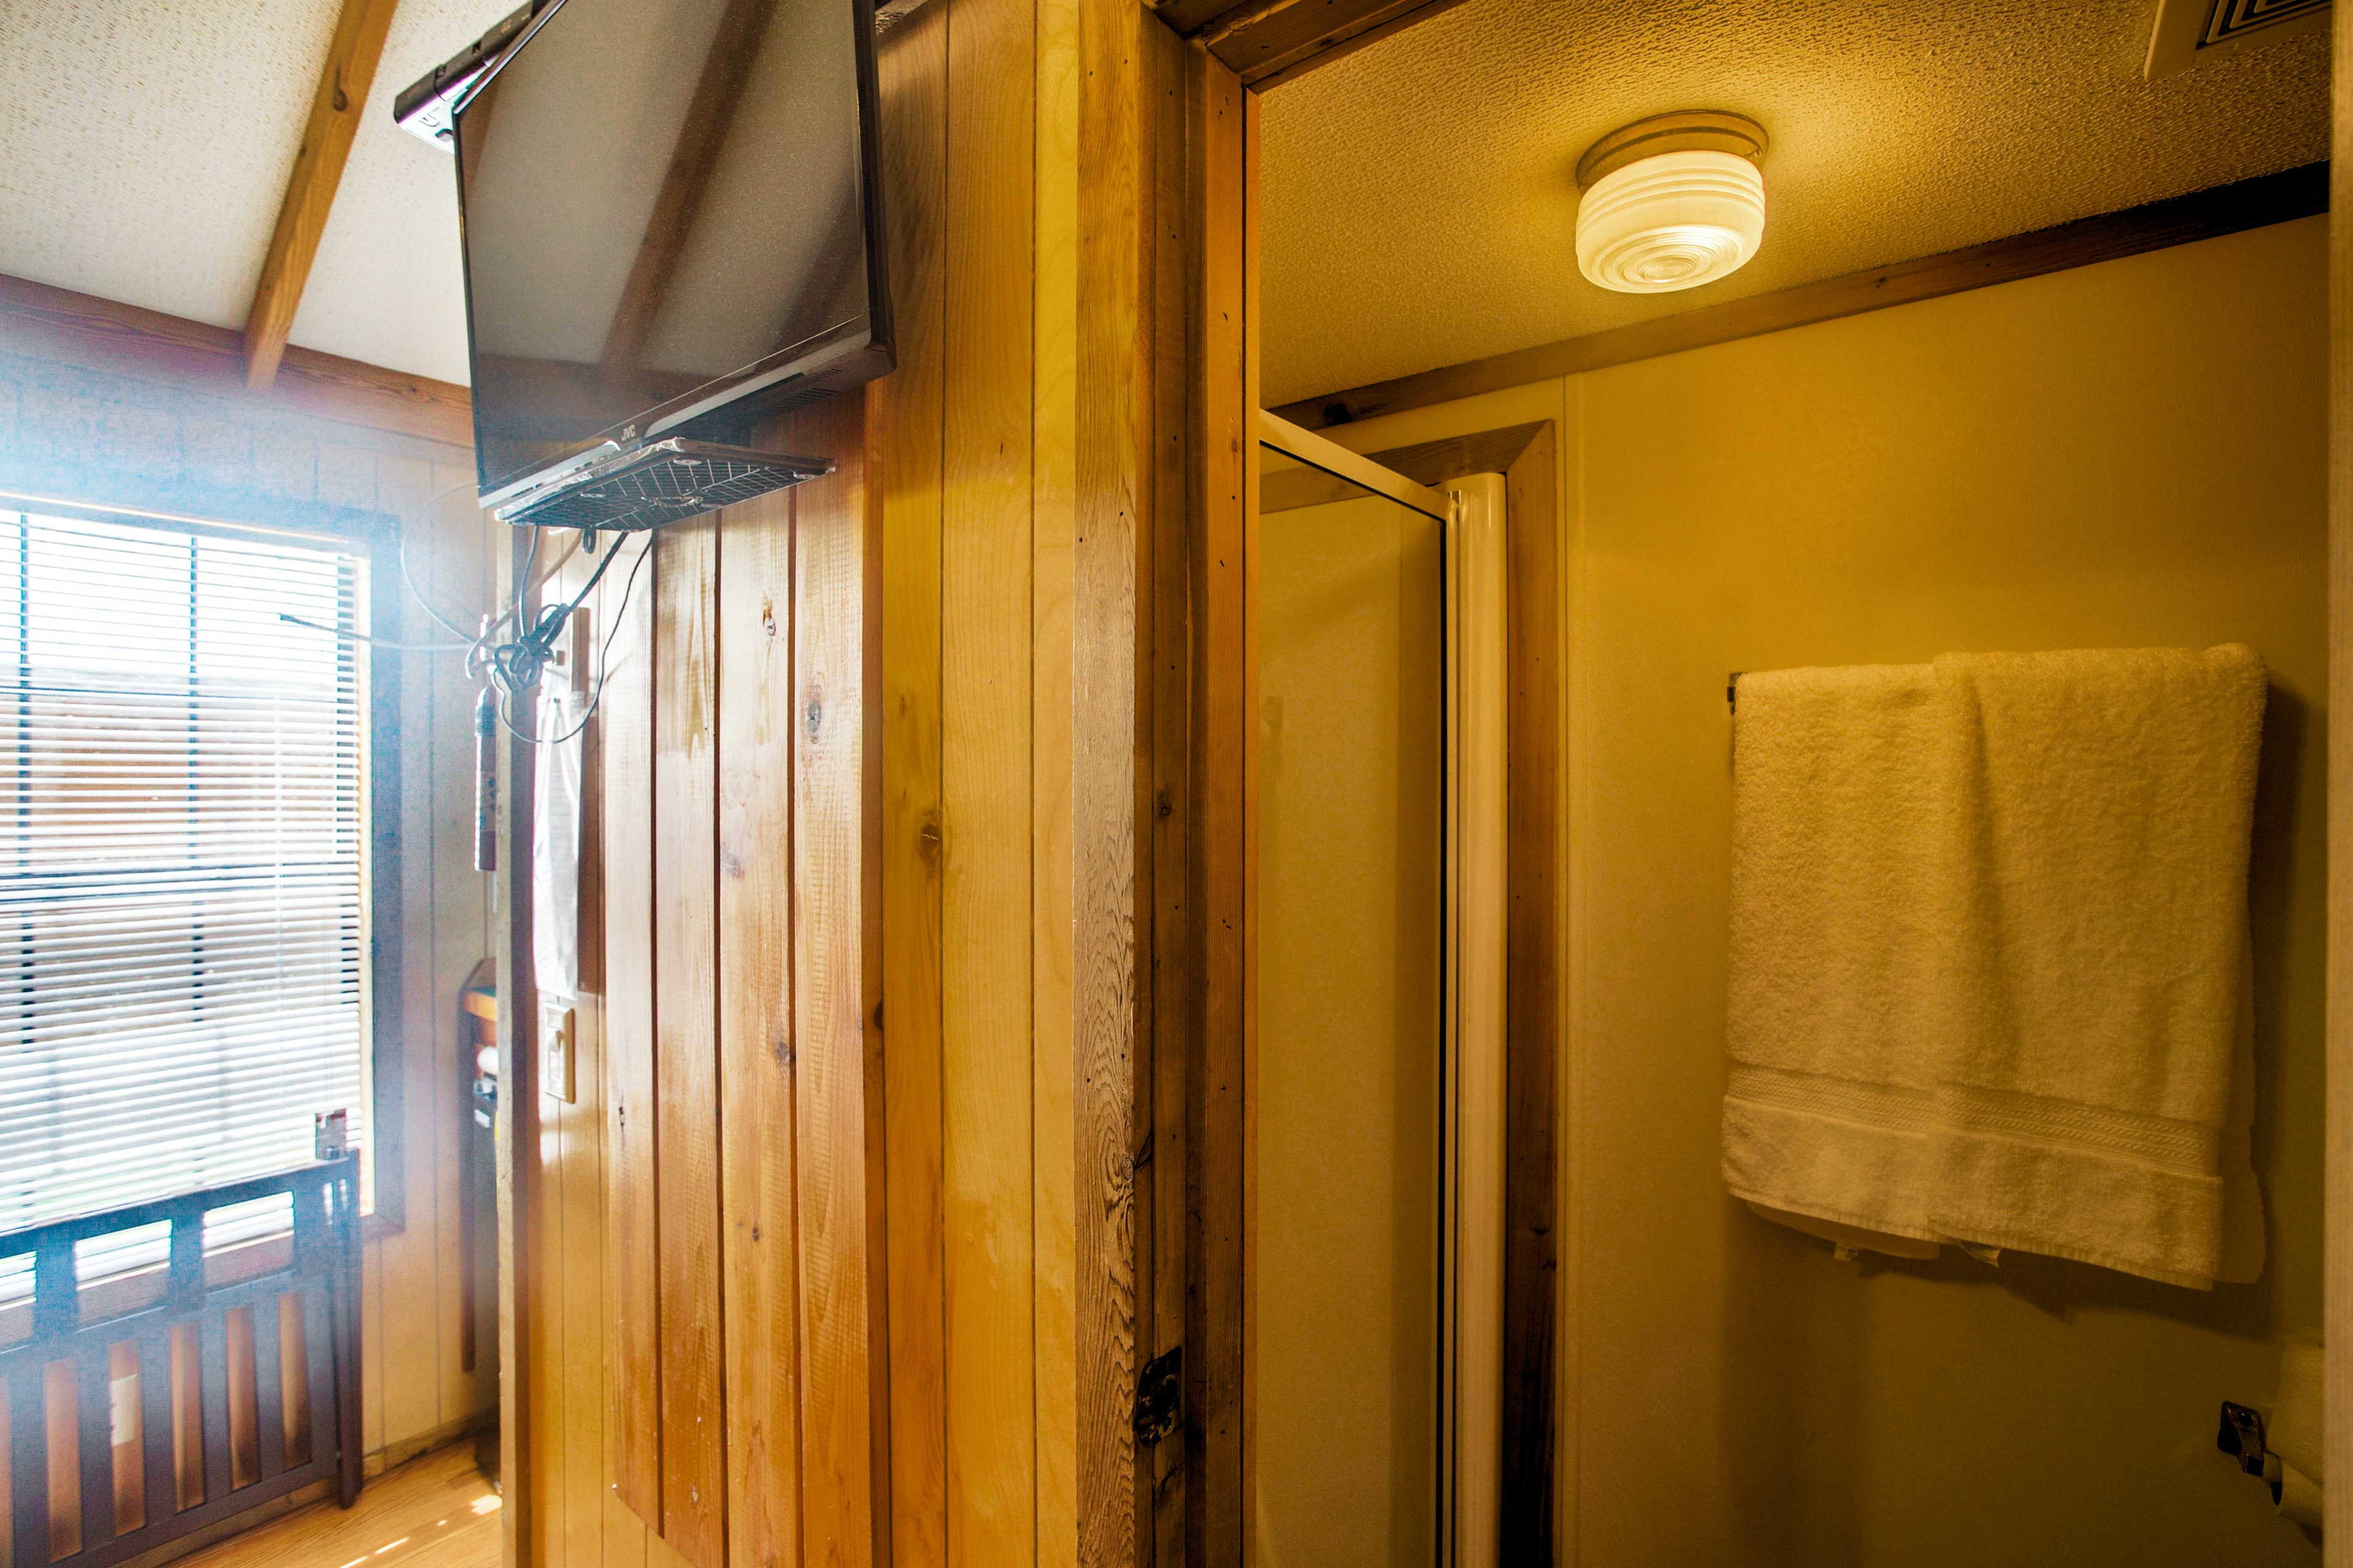 The bathroom offers a walk in shower.